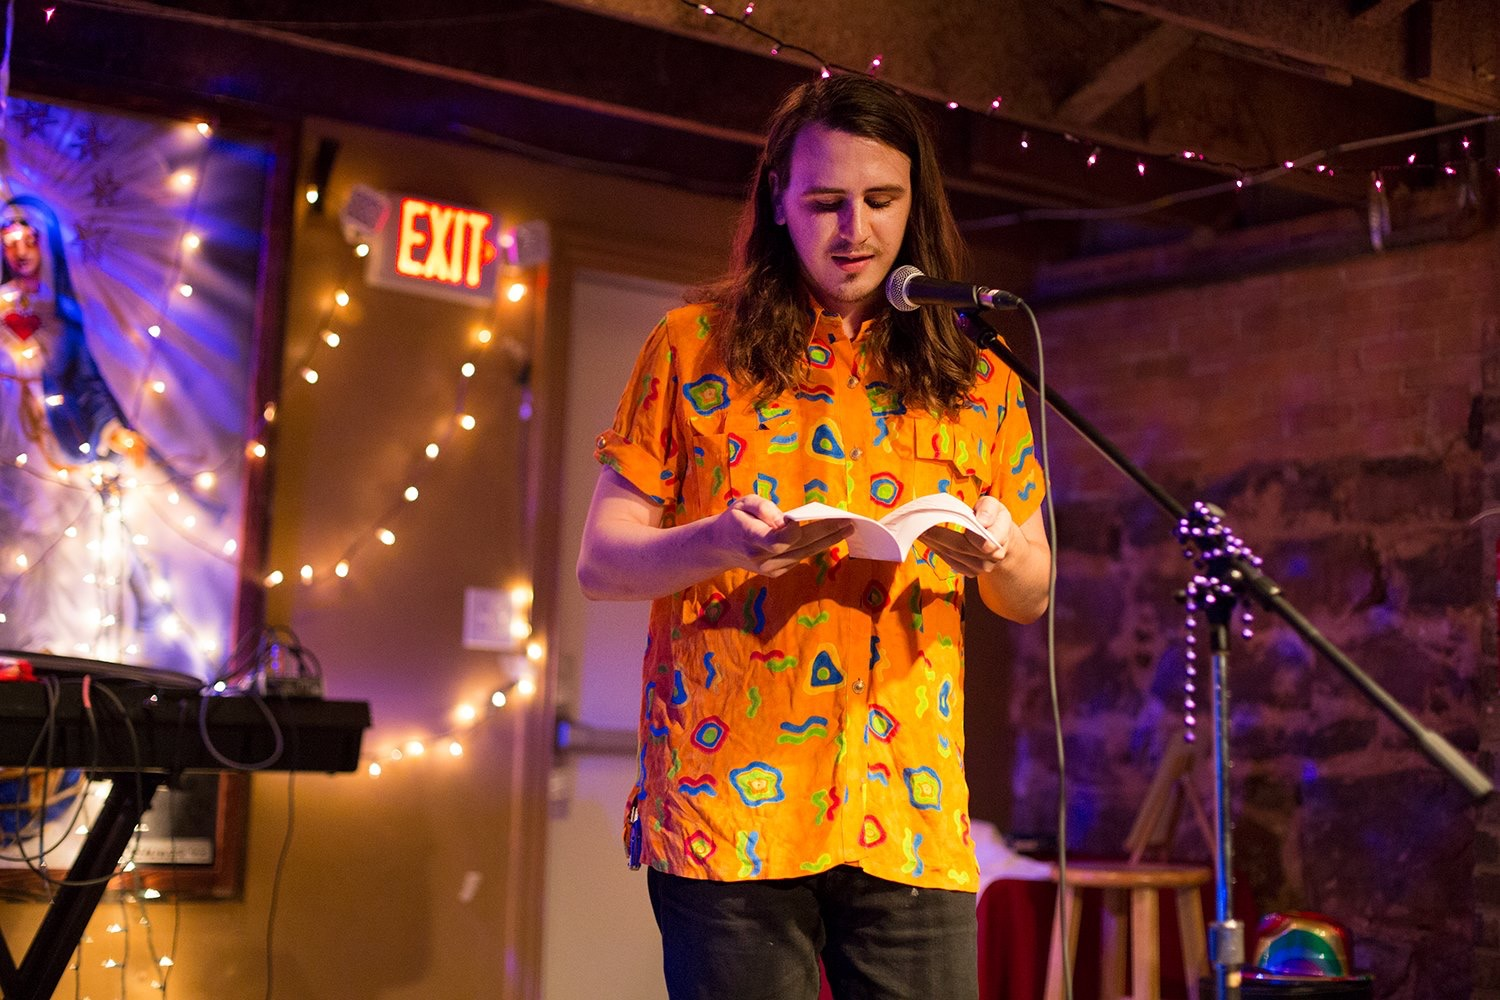 Adam S. Mahout   music, poetry   Adam S. Mahout writes poetry and music in Denton, Texas. He currently performs with J. Allert, Ditch Prince, and Danielle Grubb. Other works have been featured on the Dentonite, North Texas Review, and here (Spiderweb Salon!)   Instagram